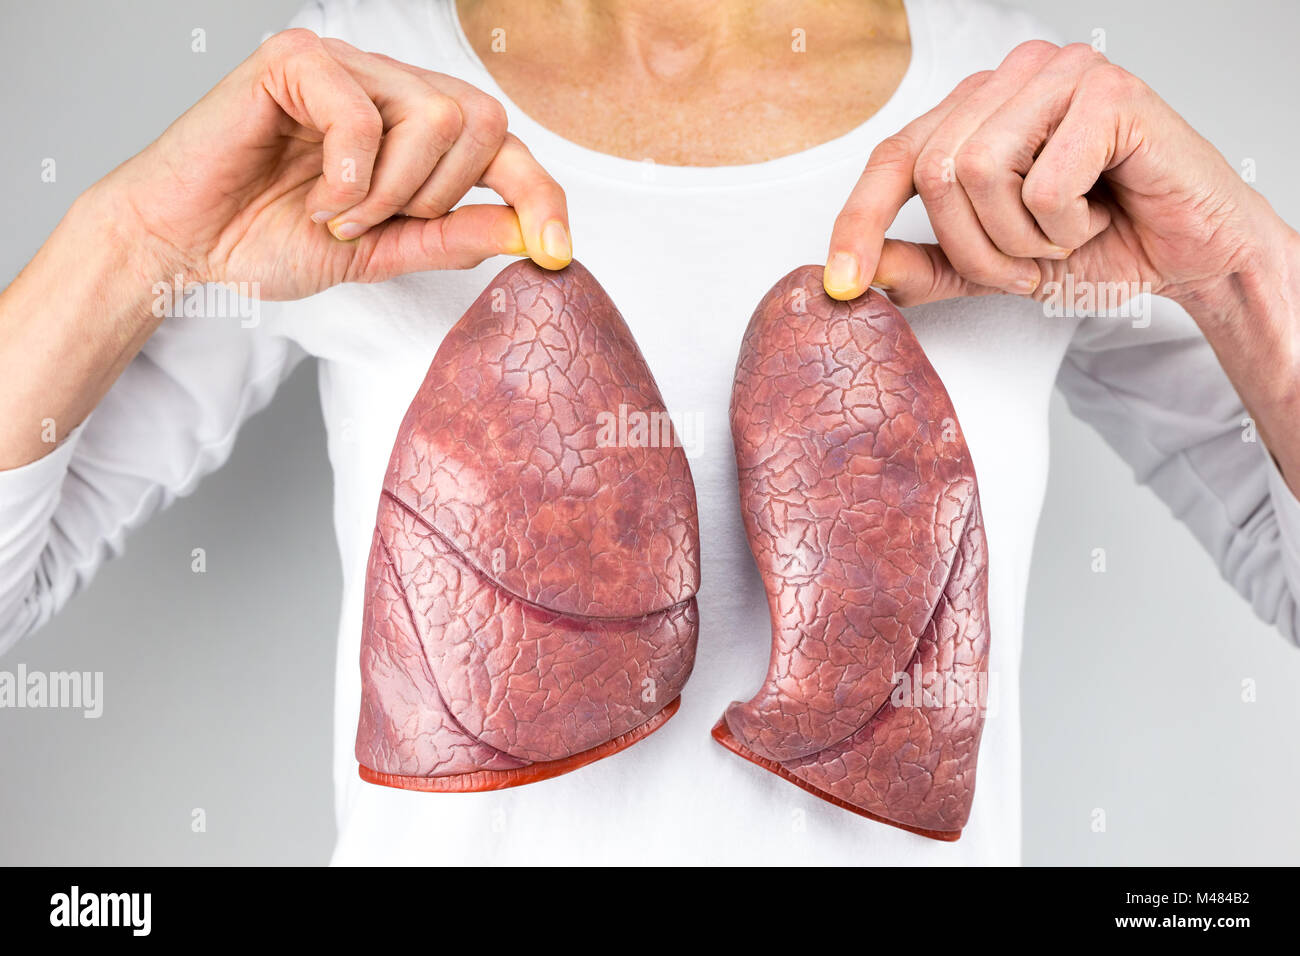 Woman holding two lung models in front of chest - Stock Image